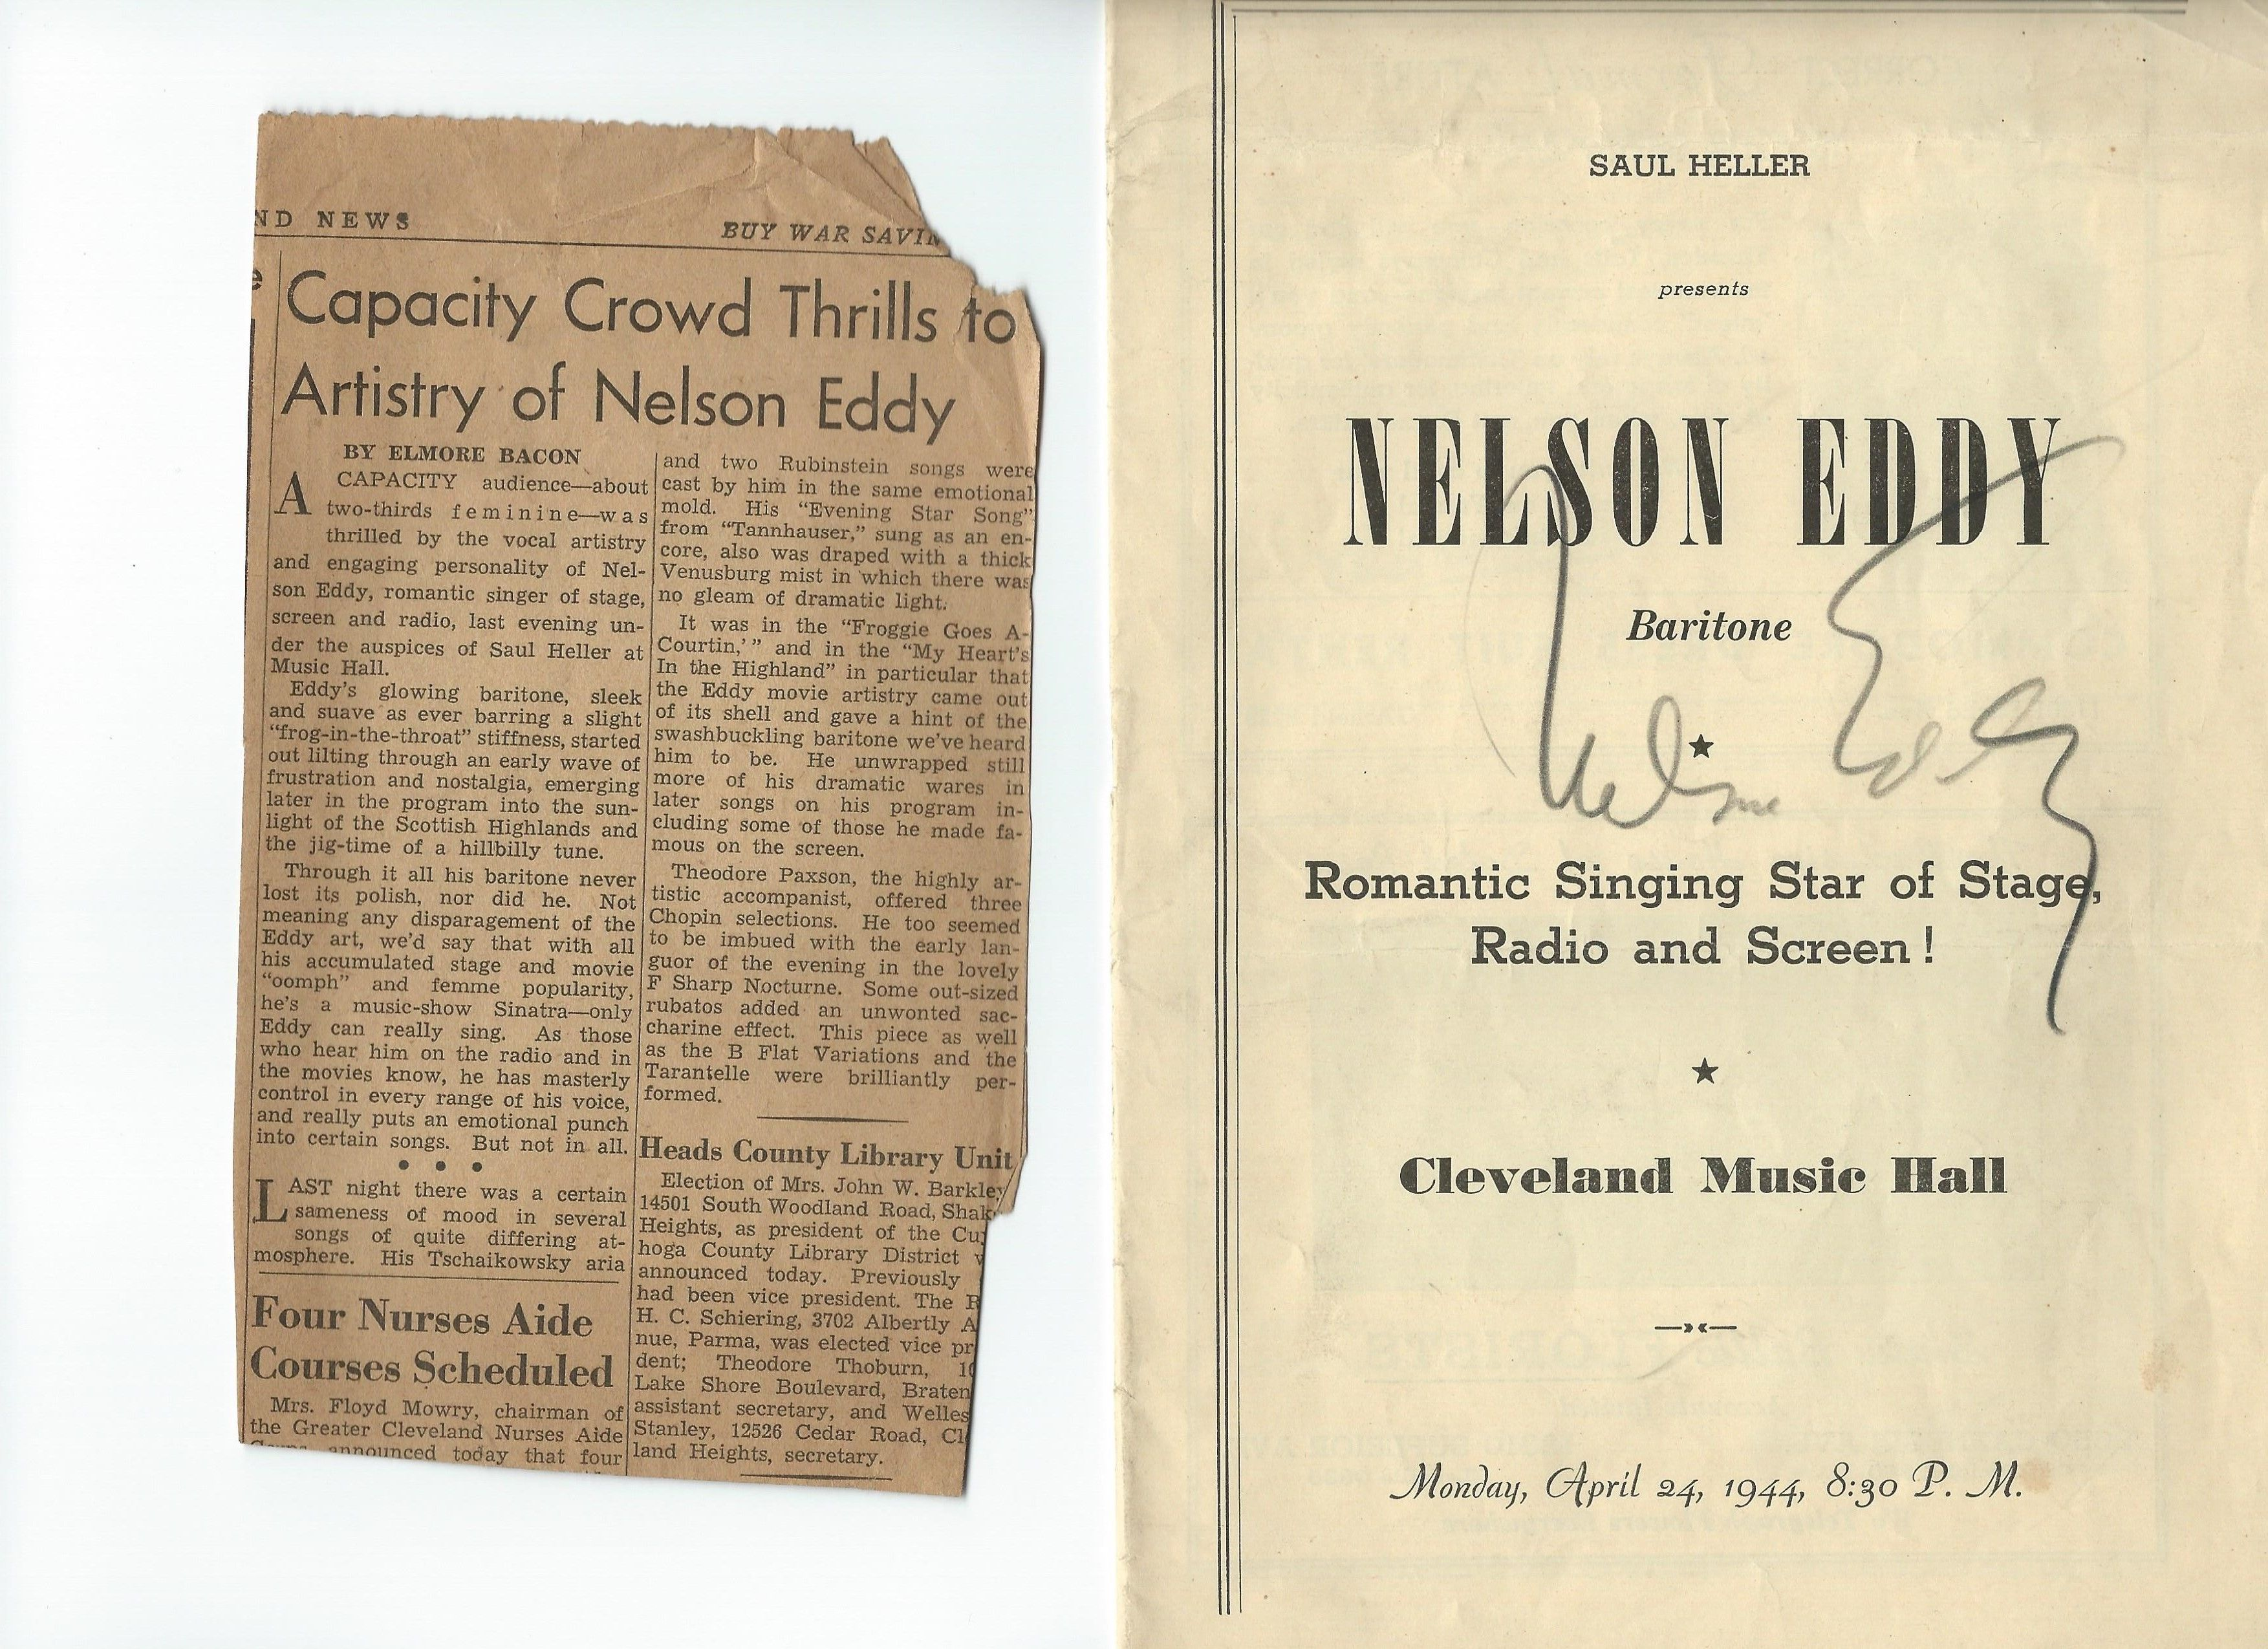 Nelson EddyS Signed Concert Program Cleveland Music Hall Monday